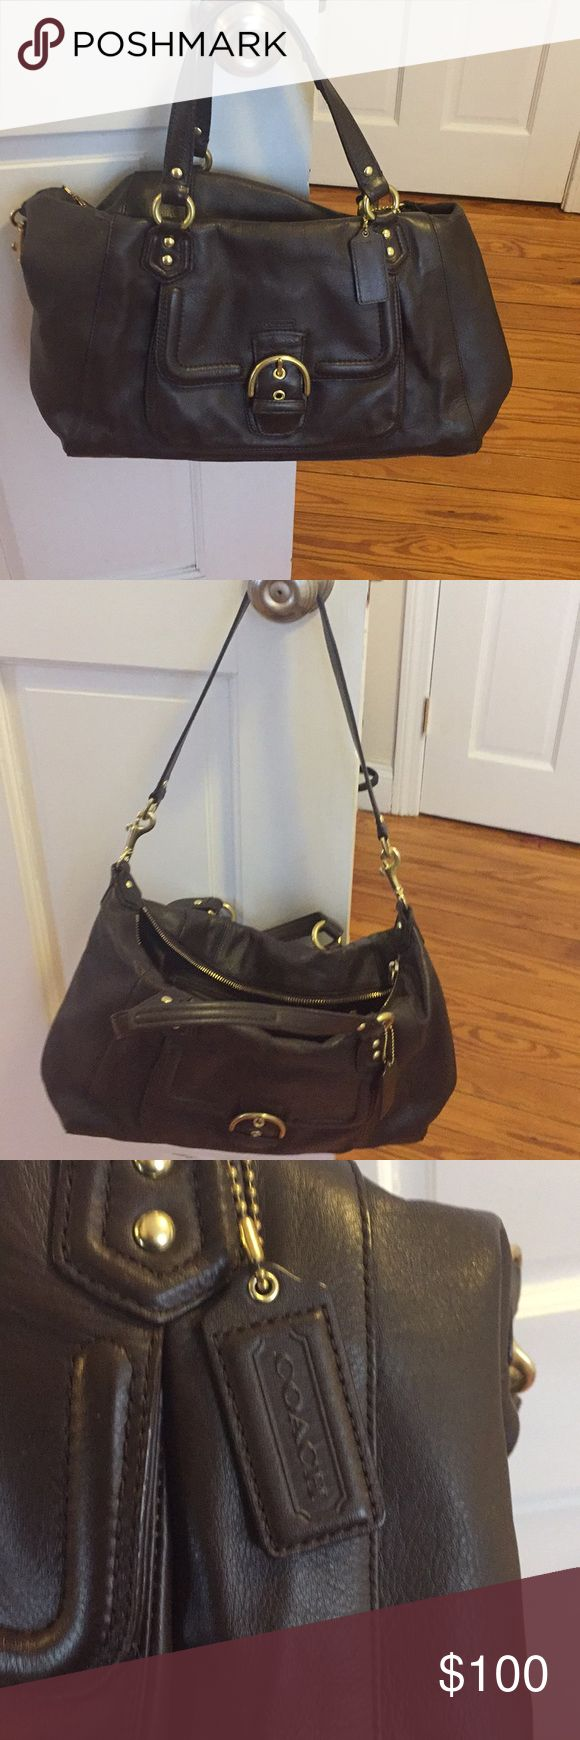 Brown leather coach bag Brown leather Coach Purse. Removable longer strap. Like new condition Coach Bags Shoulder Bags